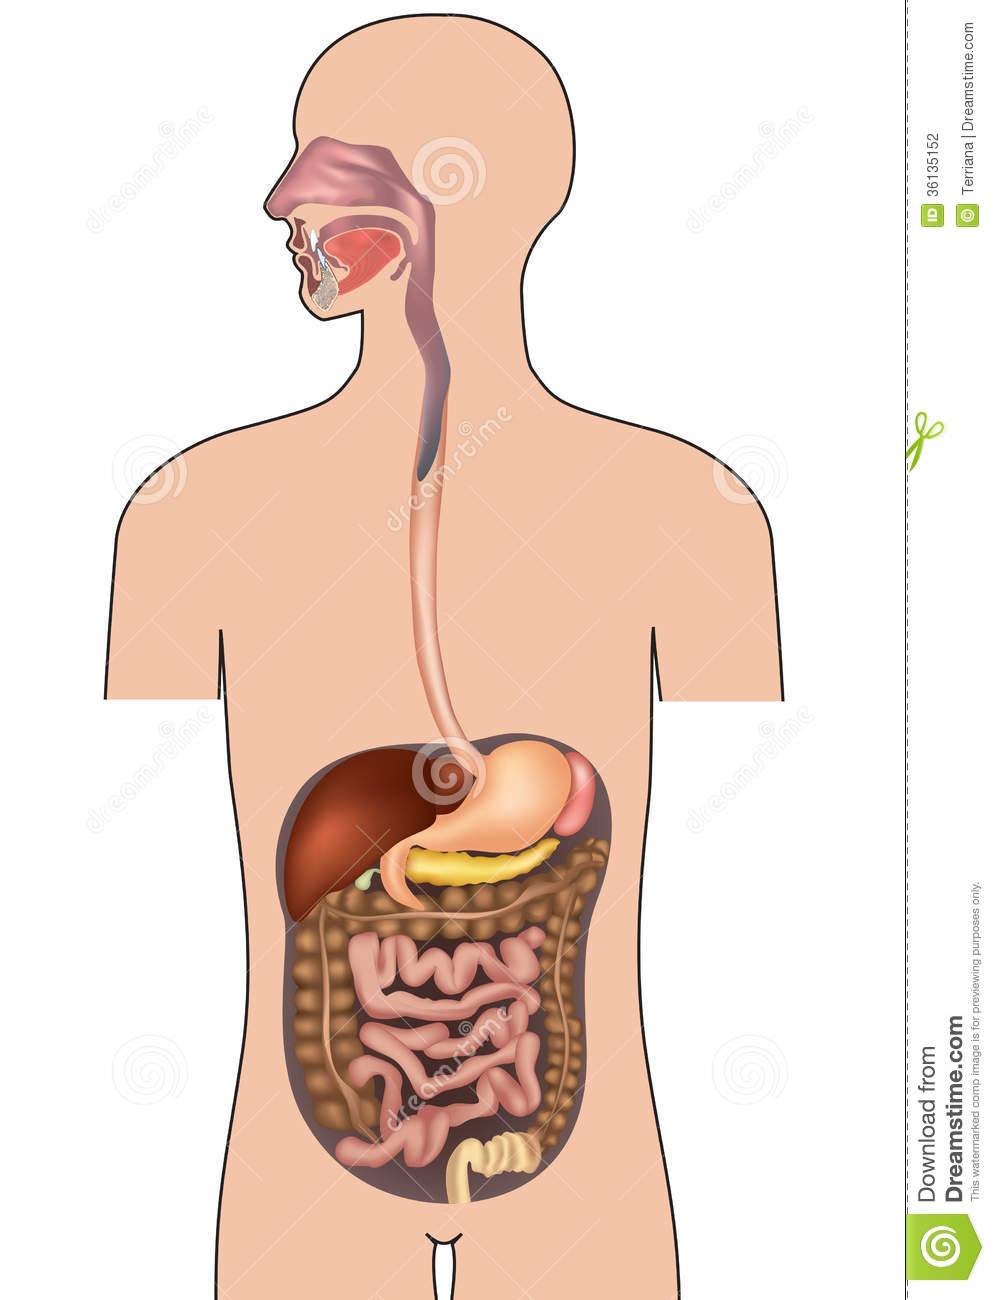 Human Digestive System. Human Body Anatomy. Stock Illustration ...